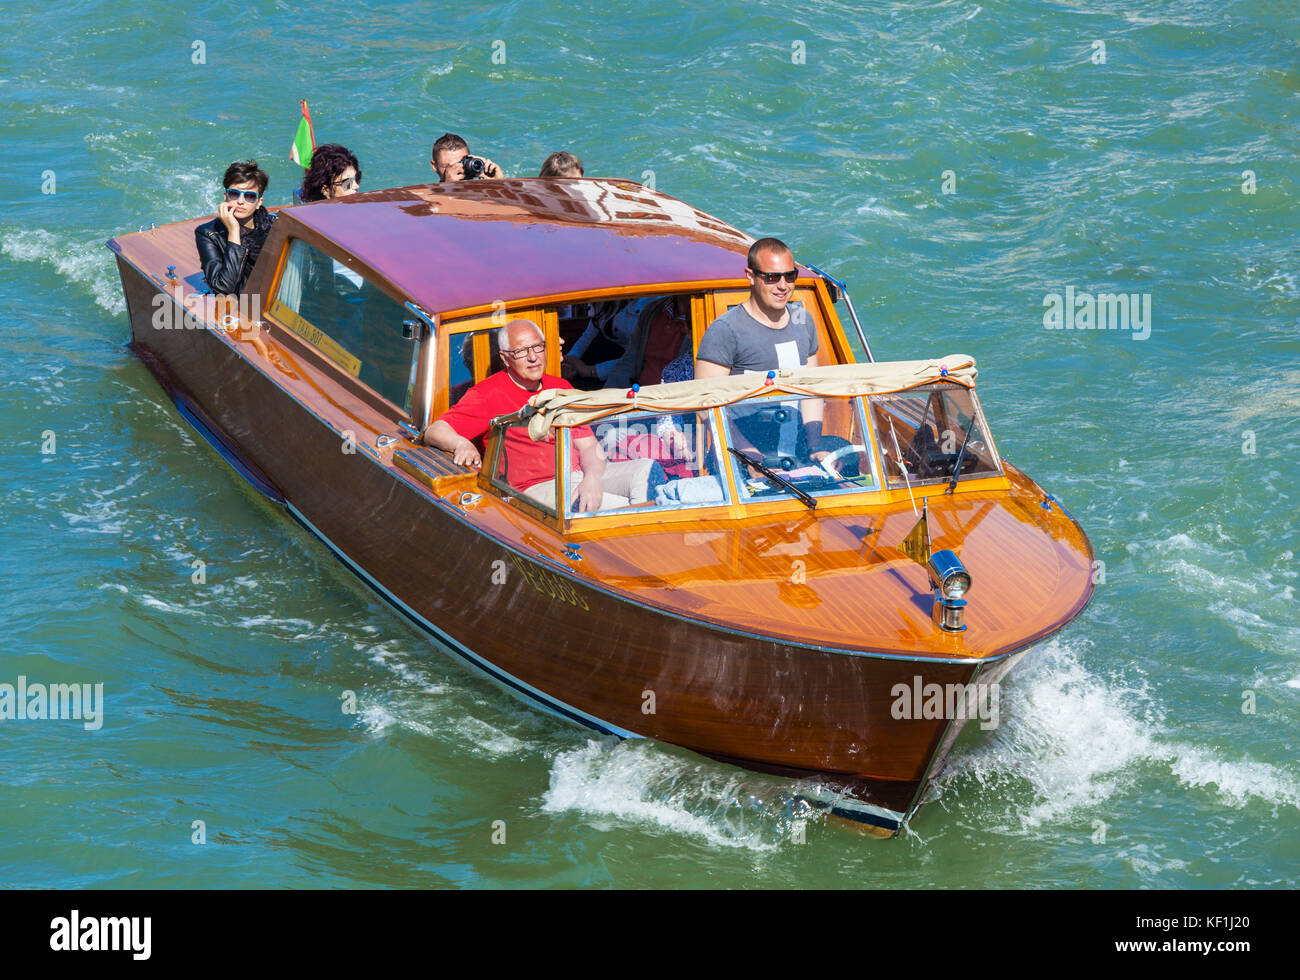 VENICE ITALY VENICE  Wooden private water taxi  in Venice on the Grand Canal Venice Italy EU Europe - Stock Image